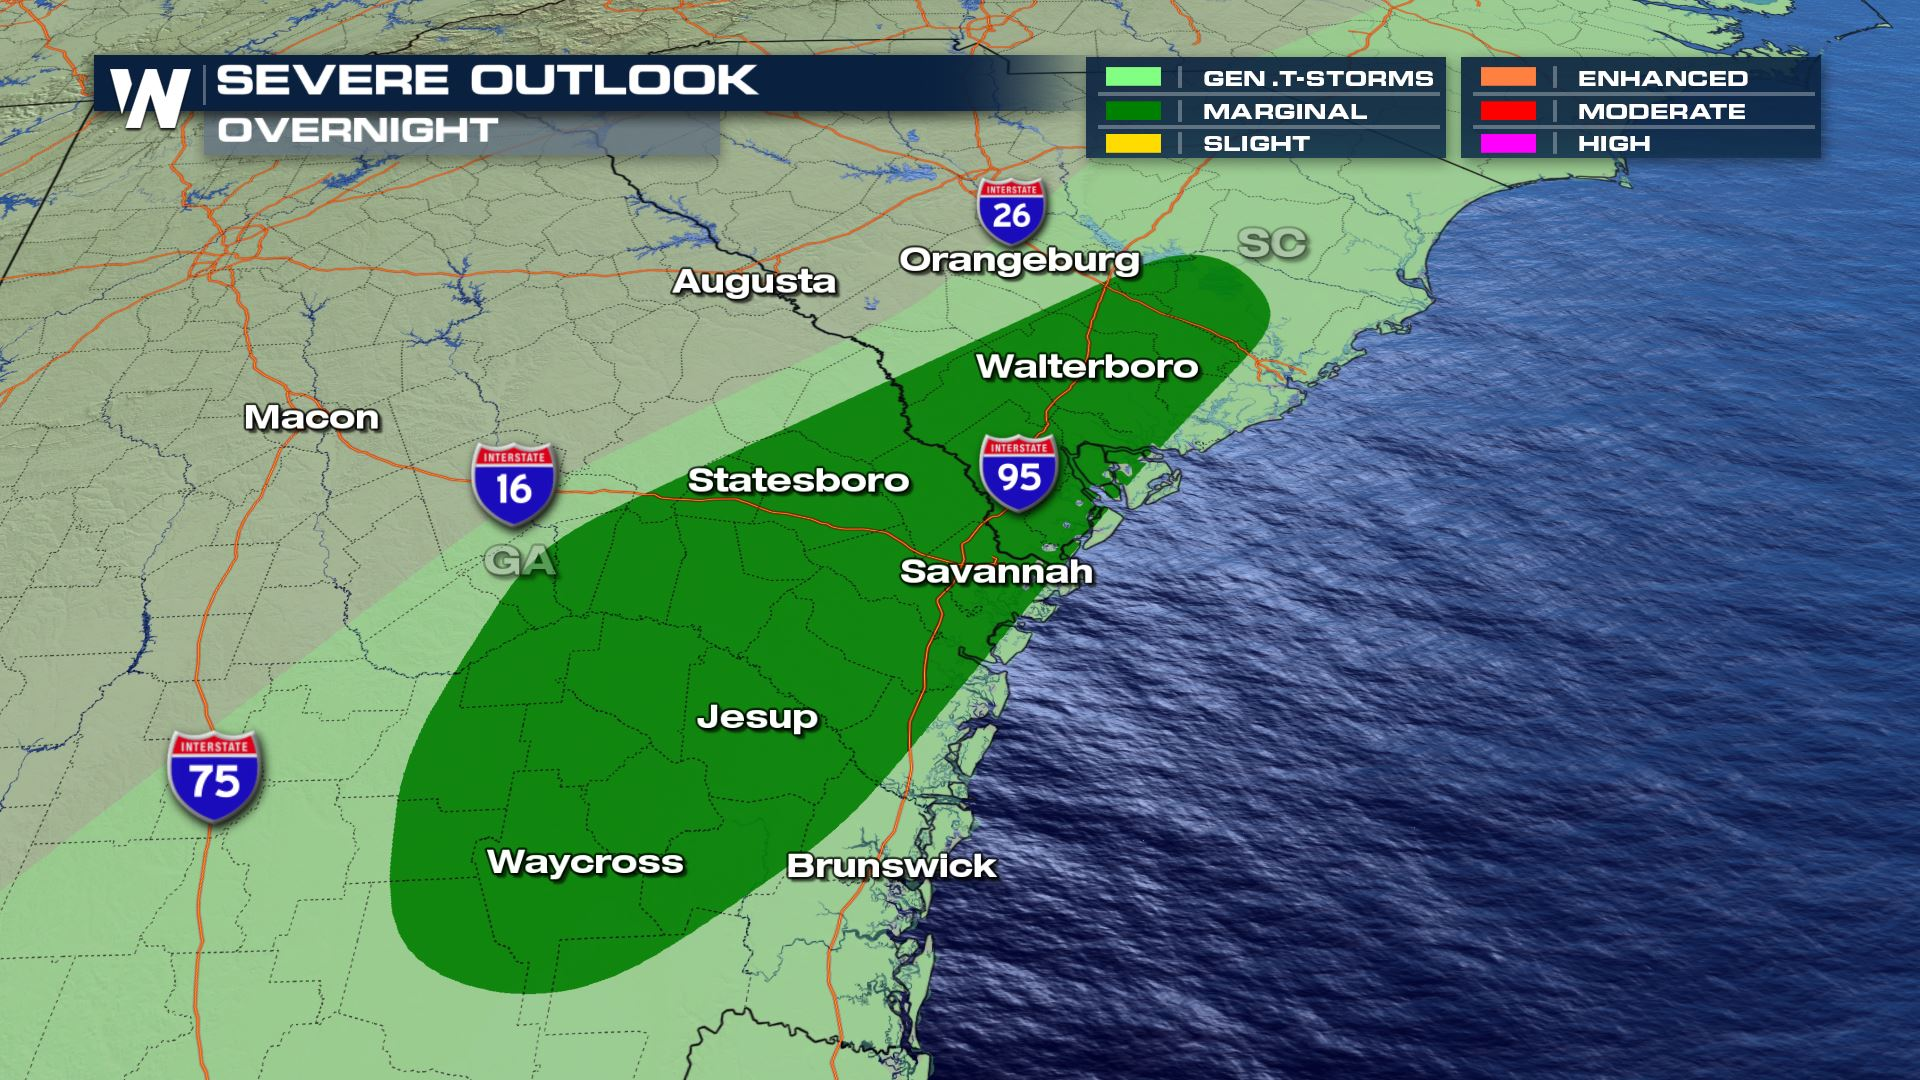 Southeast Storms Bring Mid-Atlantic Flooding Concern